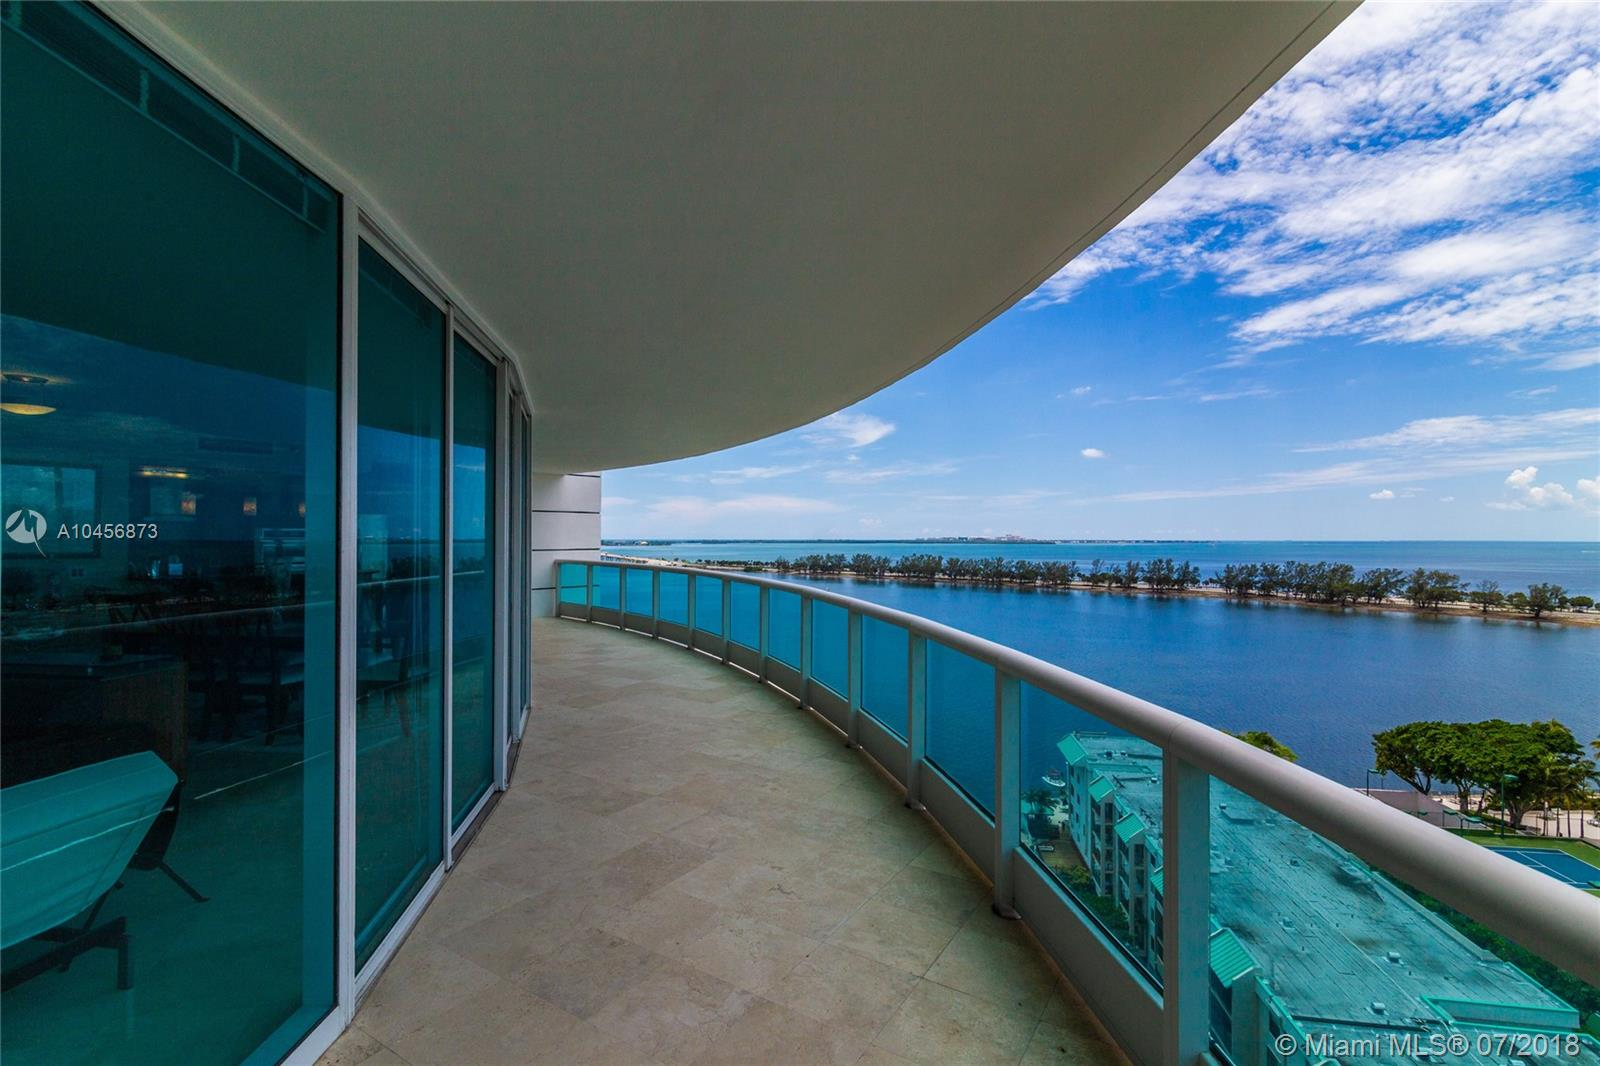 2127 Brickell Avenue, Miami, FL 33129, Bristol Tower Condominium #1702, Brickell, Miami A10456873 image #2